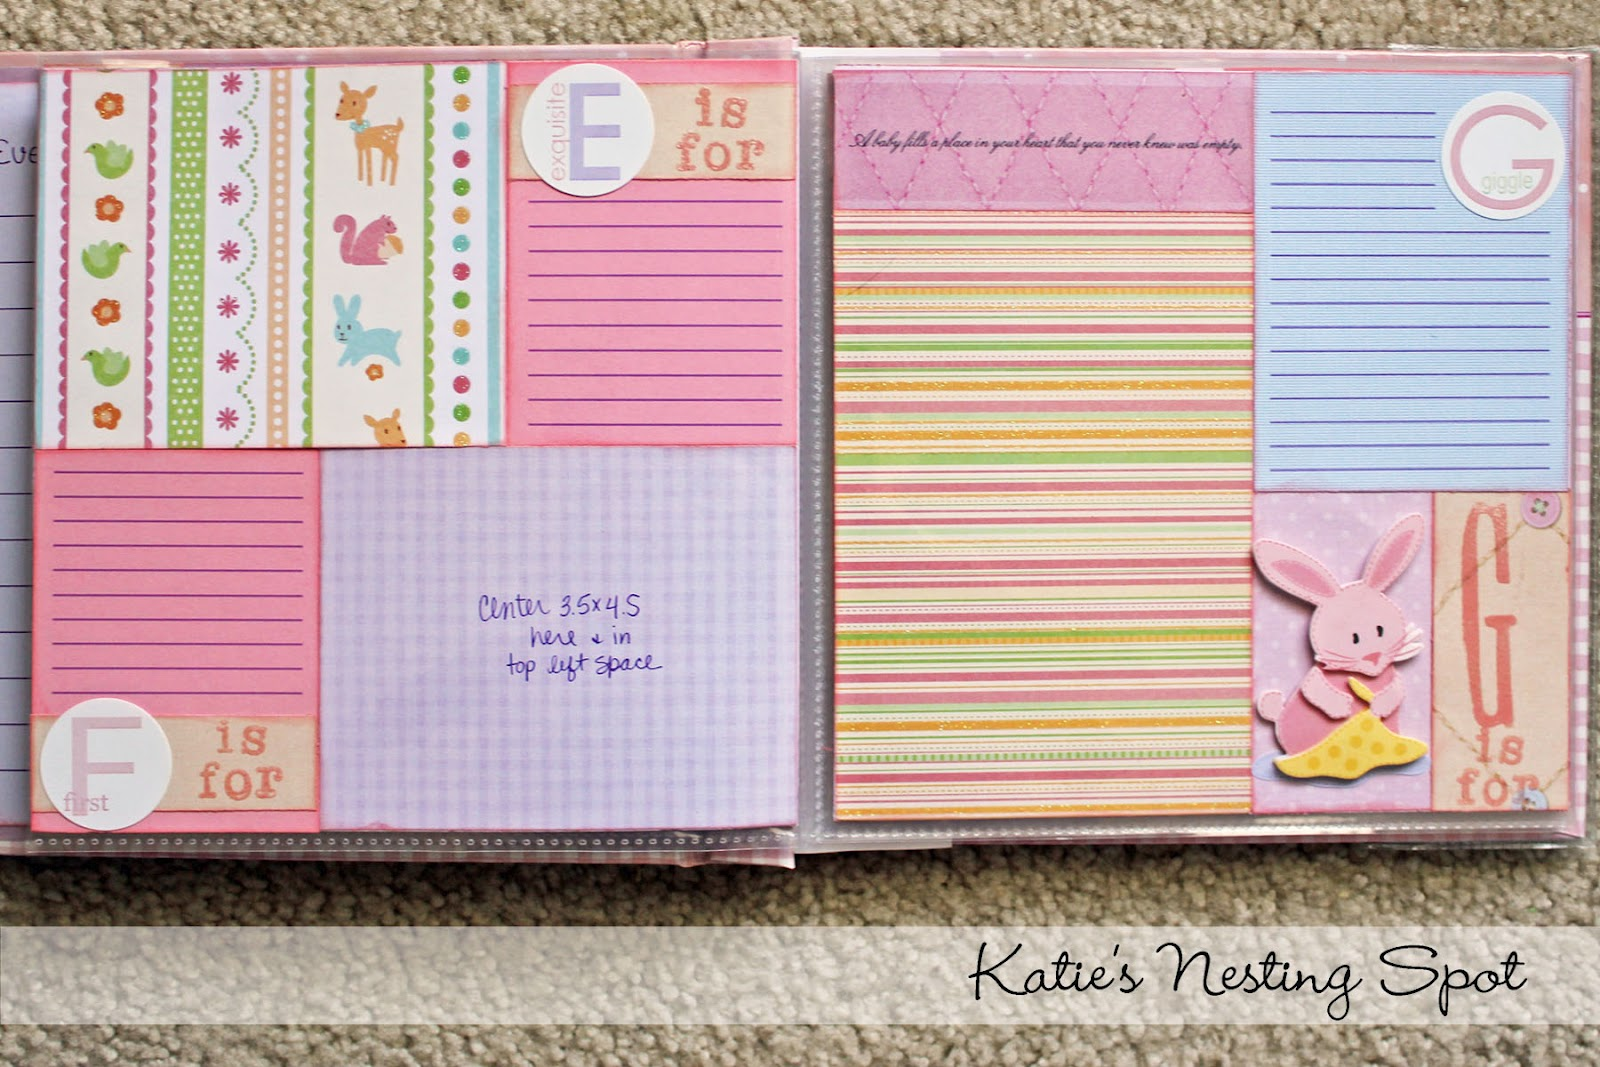 Abc scrapbook ideas list - Then I Pulled Together My Baby Themed Stash And Embellished Each Layout To Make It Special And Unique